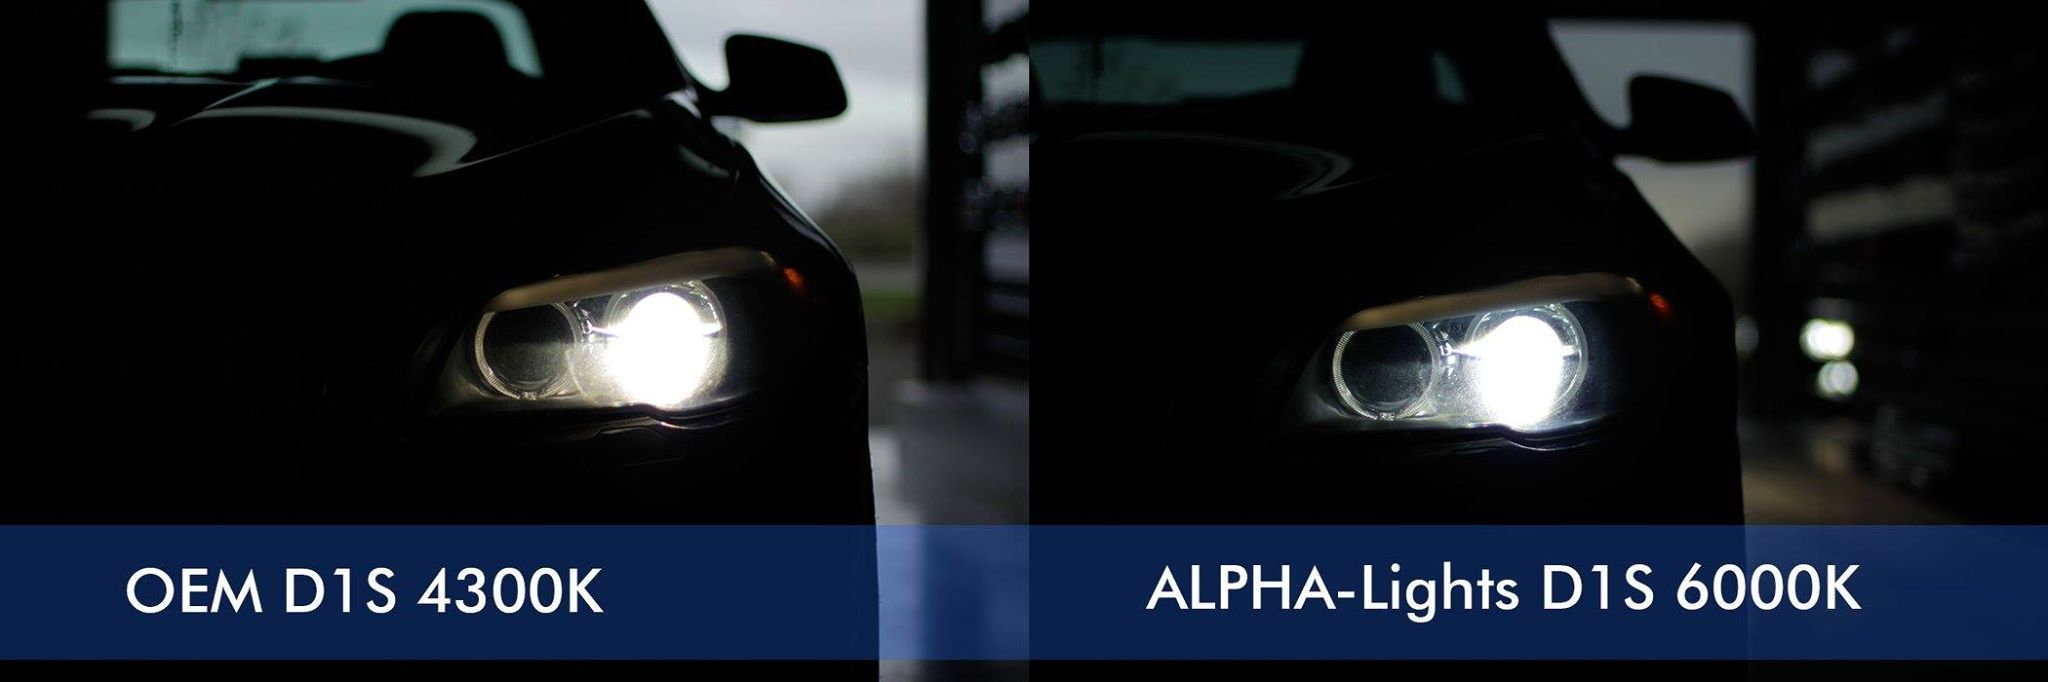 bmw f10 met alpha lights d1s 6000k xenon lampen